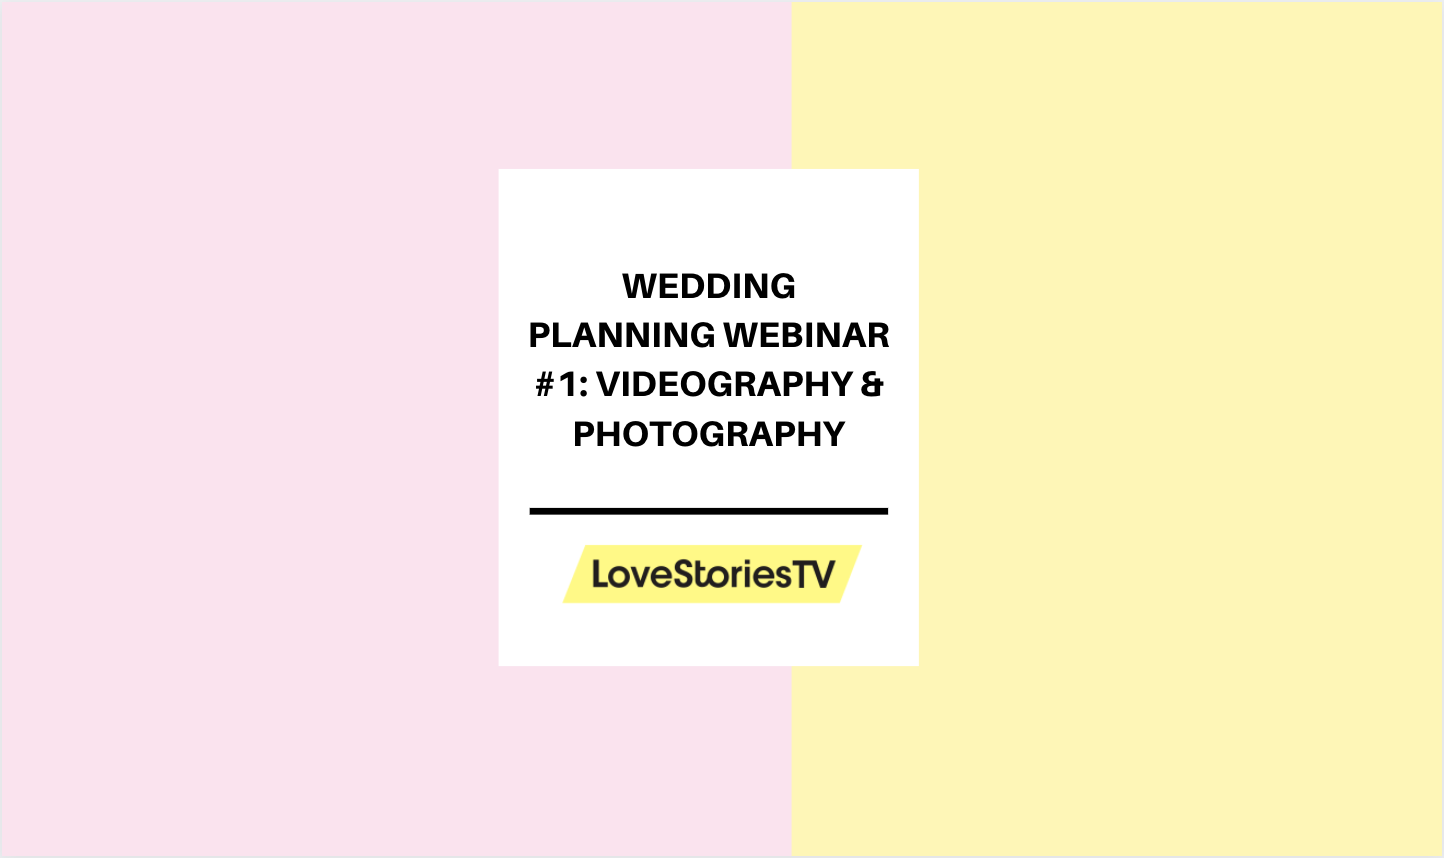 Wedding Planning Webinar #1: Videography & Photography